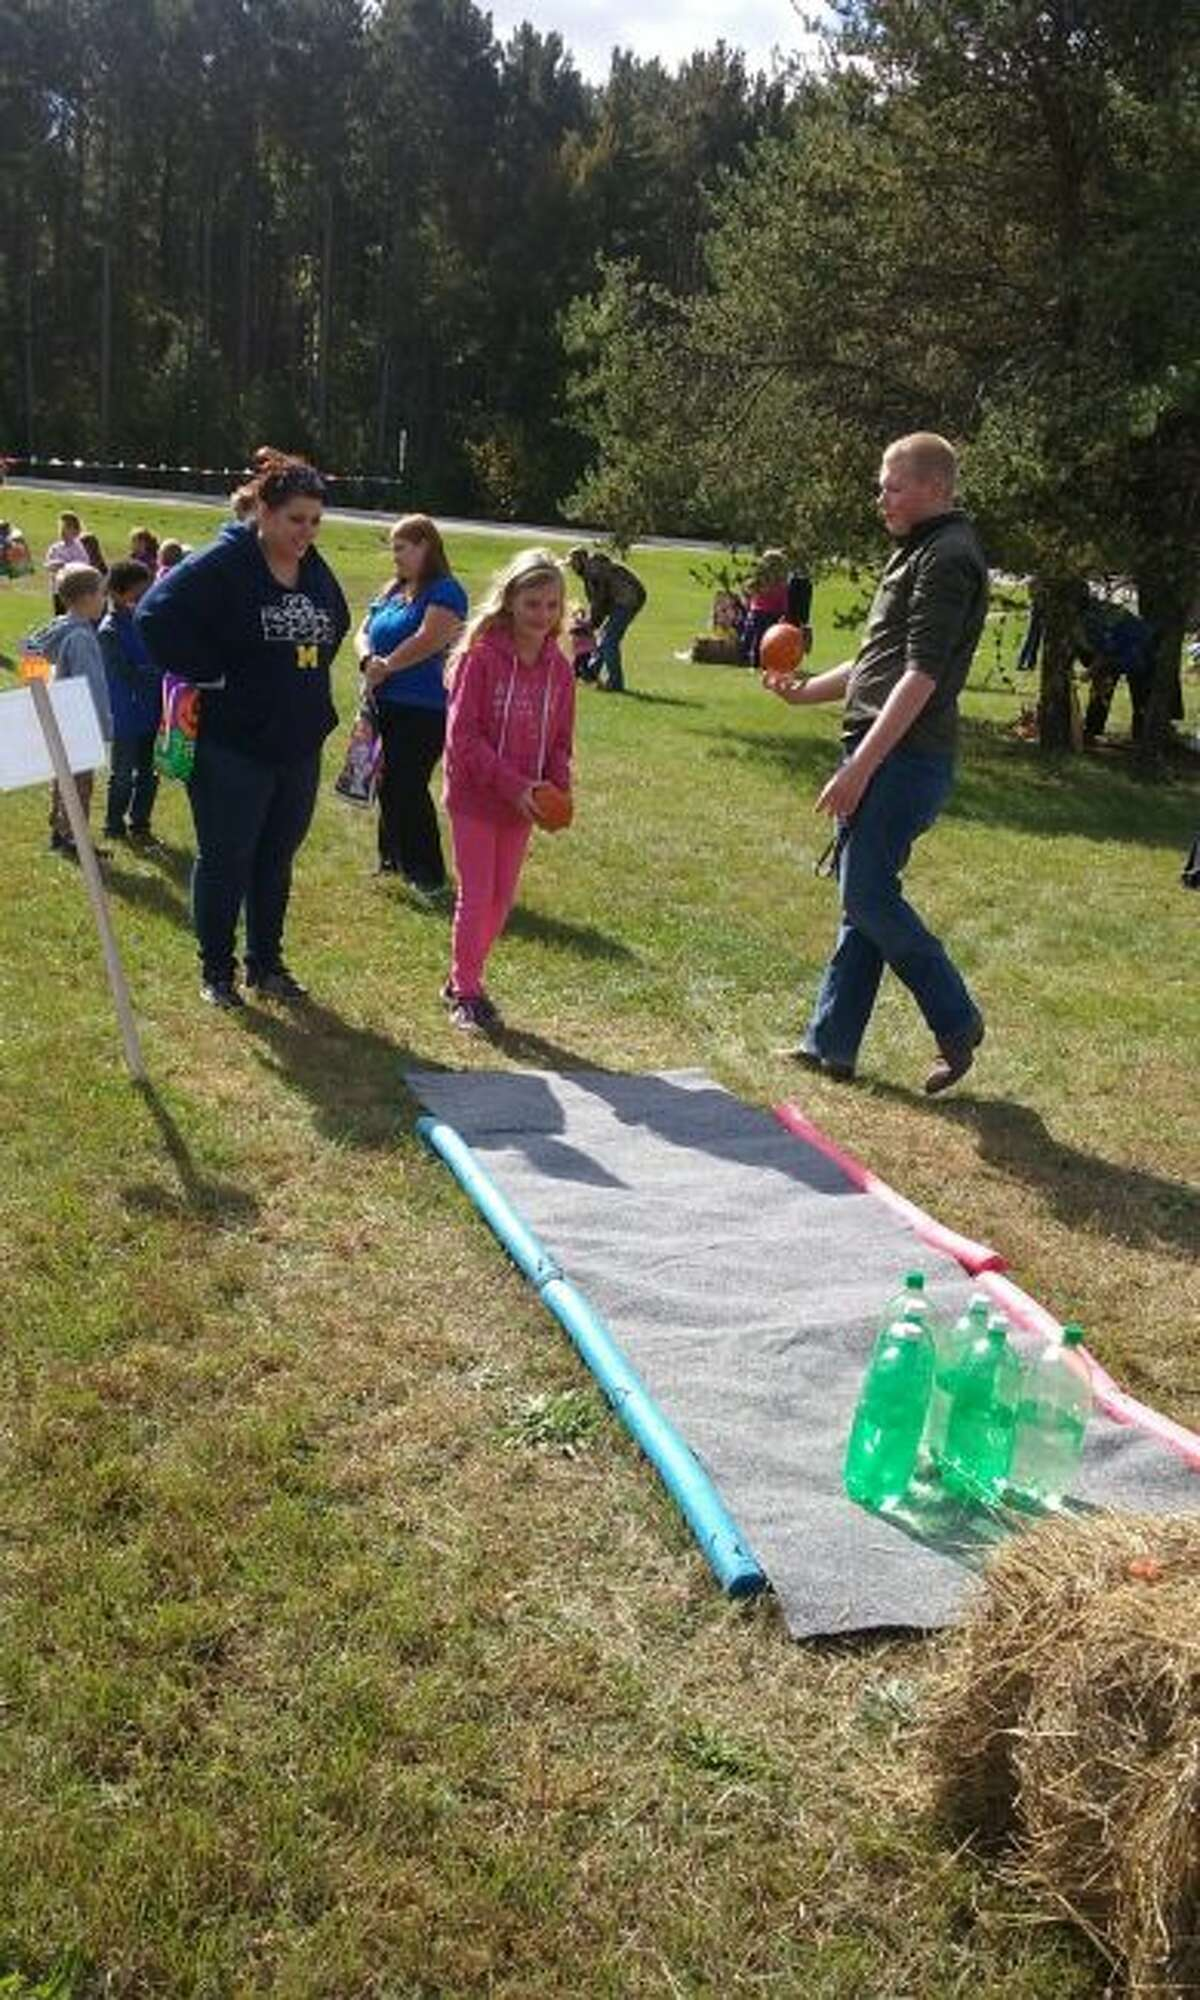 Homemade carnival-style children's games are a popular part of the annual Family Fall Festival in Morley. (Courtesy photo)